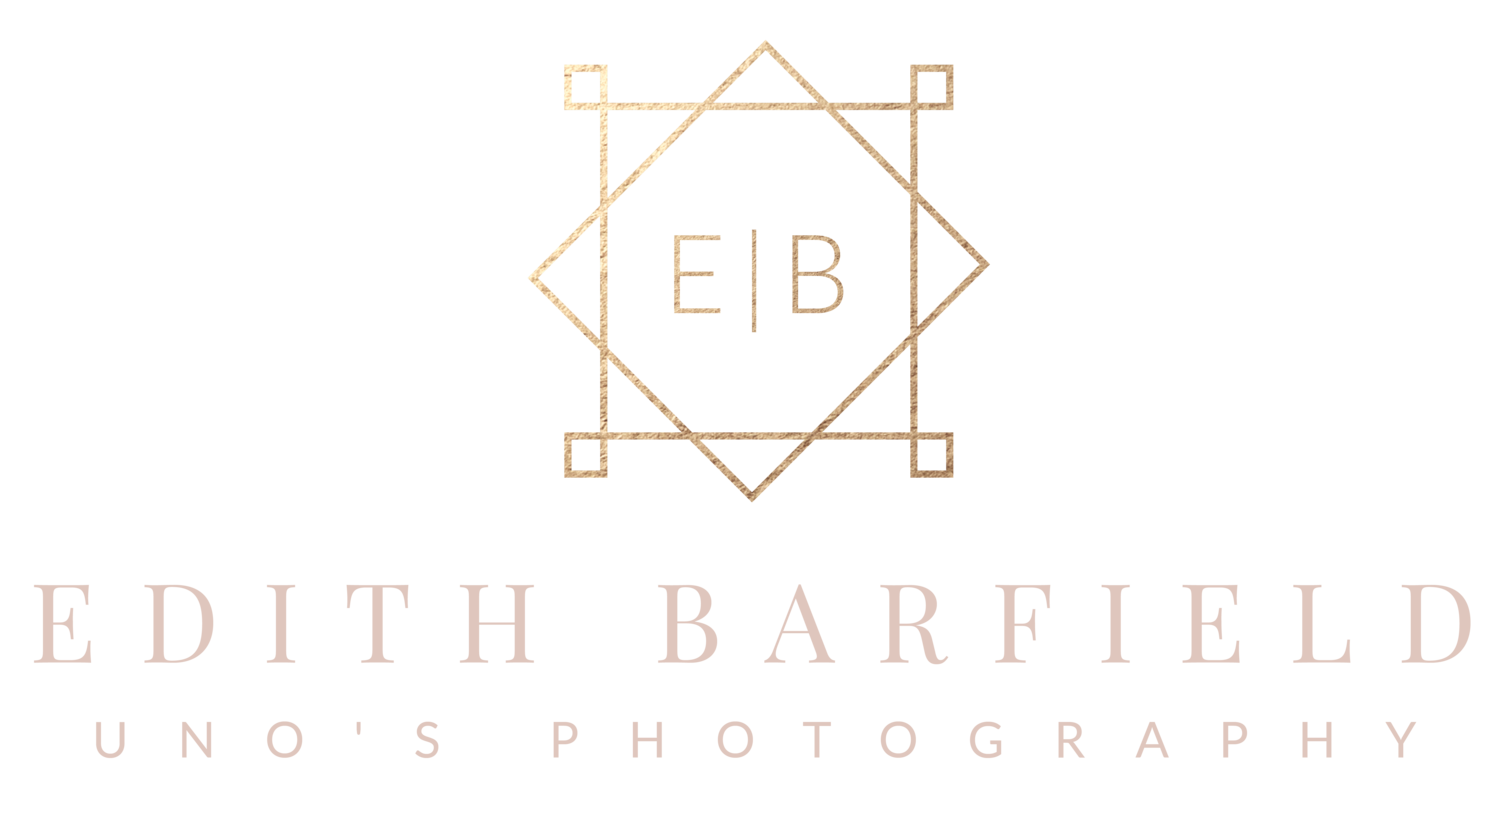 Edith Barfield Uno's Photography